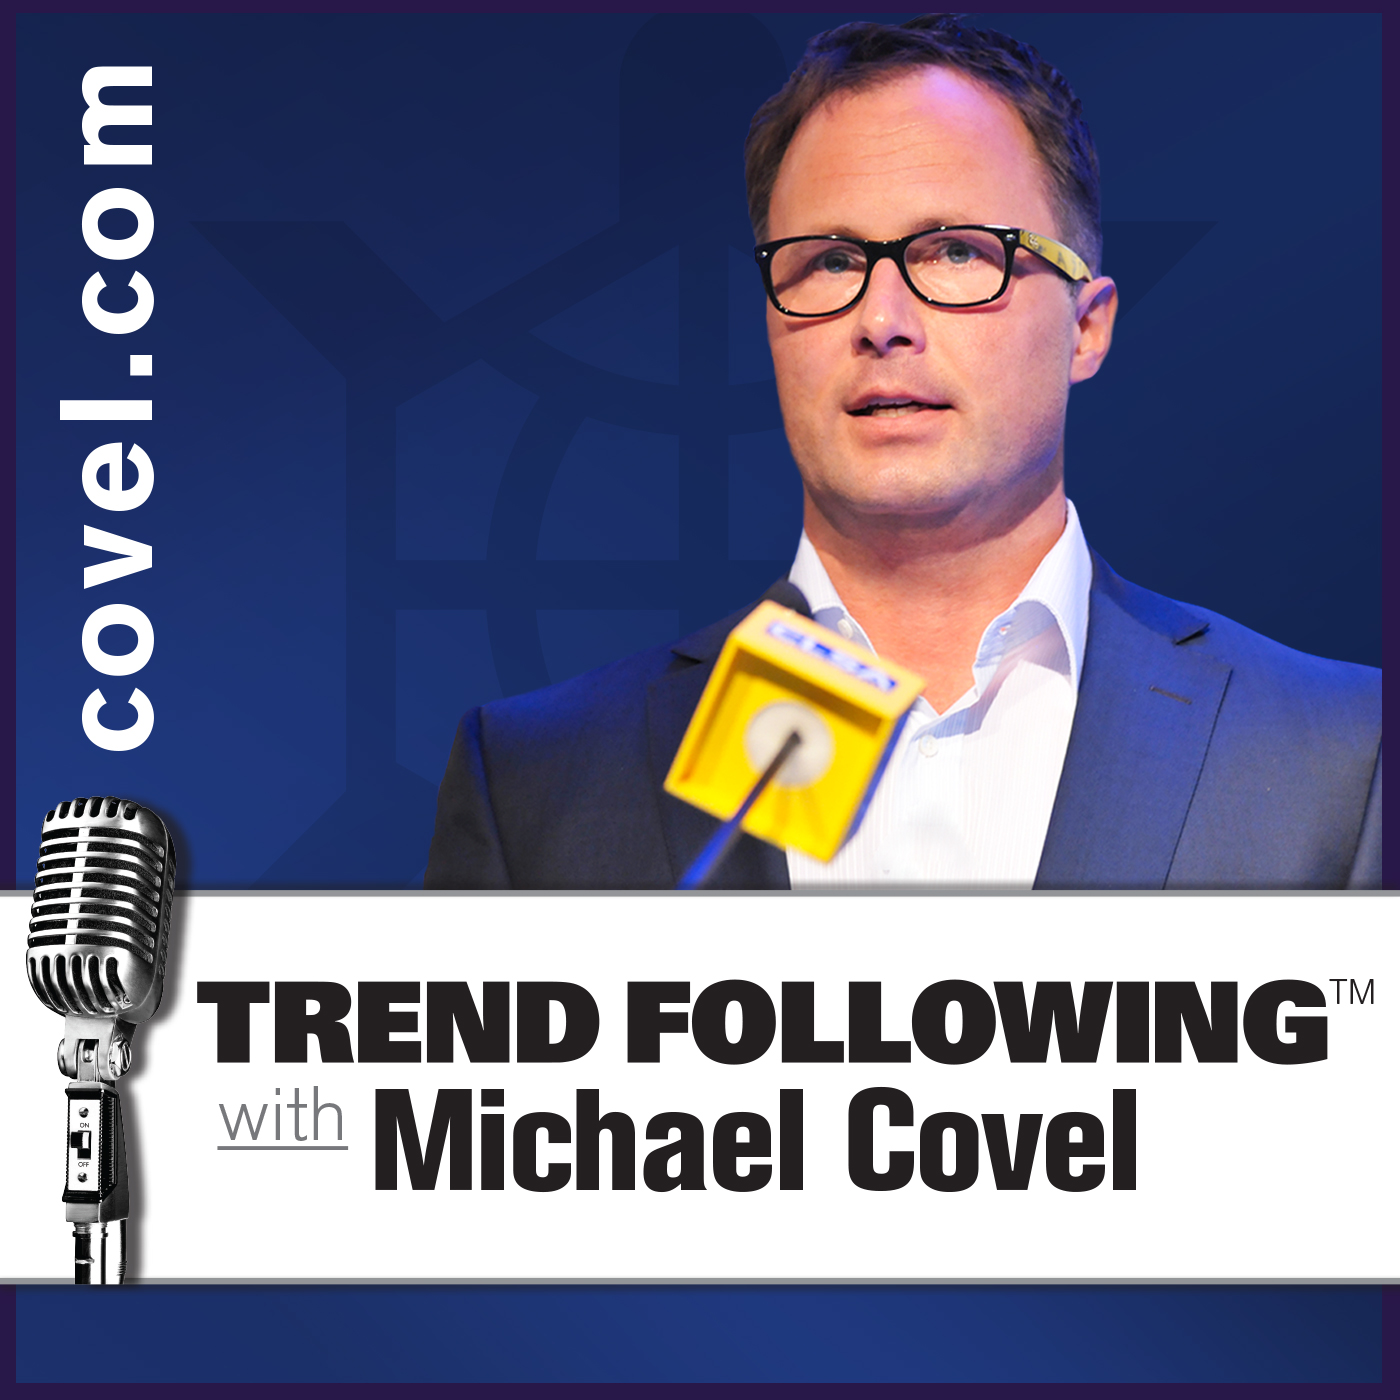 Ep. 500: Charles Faulkner Special with Michael Covel on Trend Following Radio